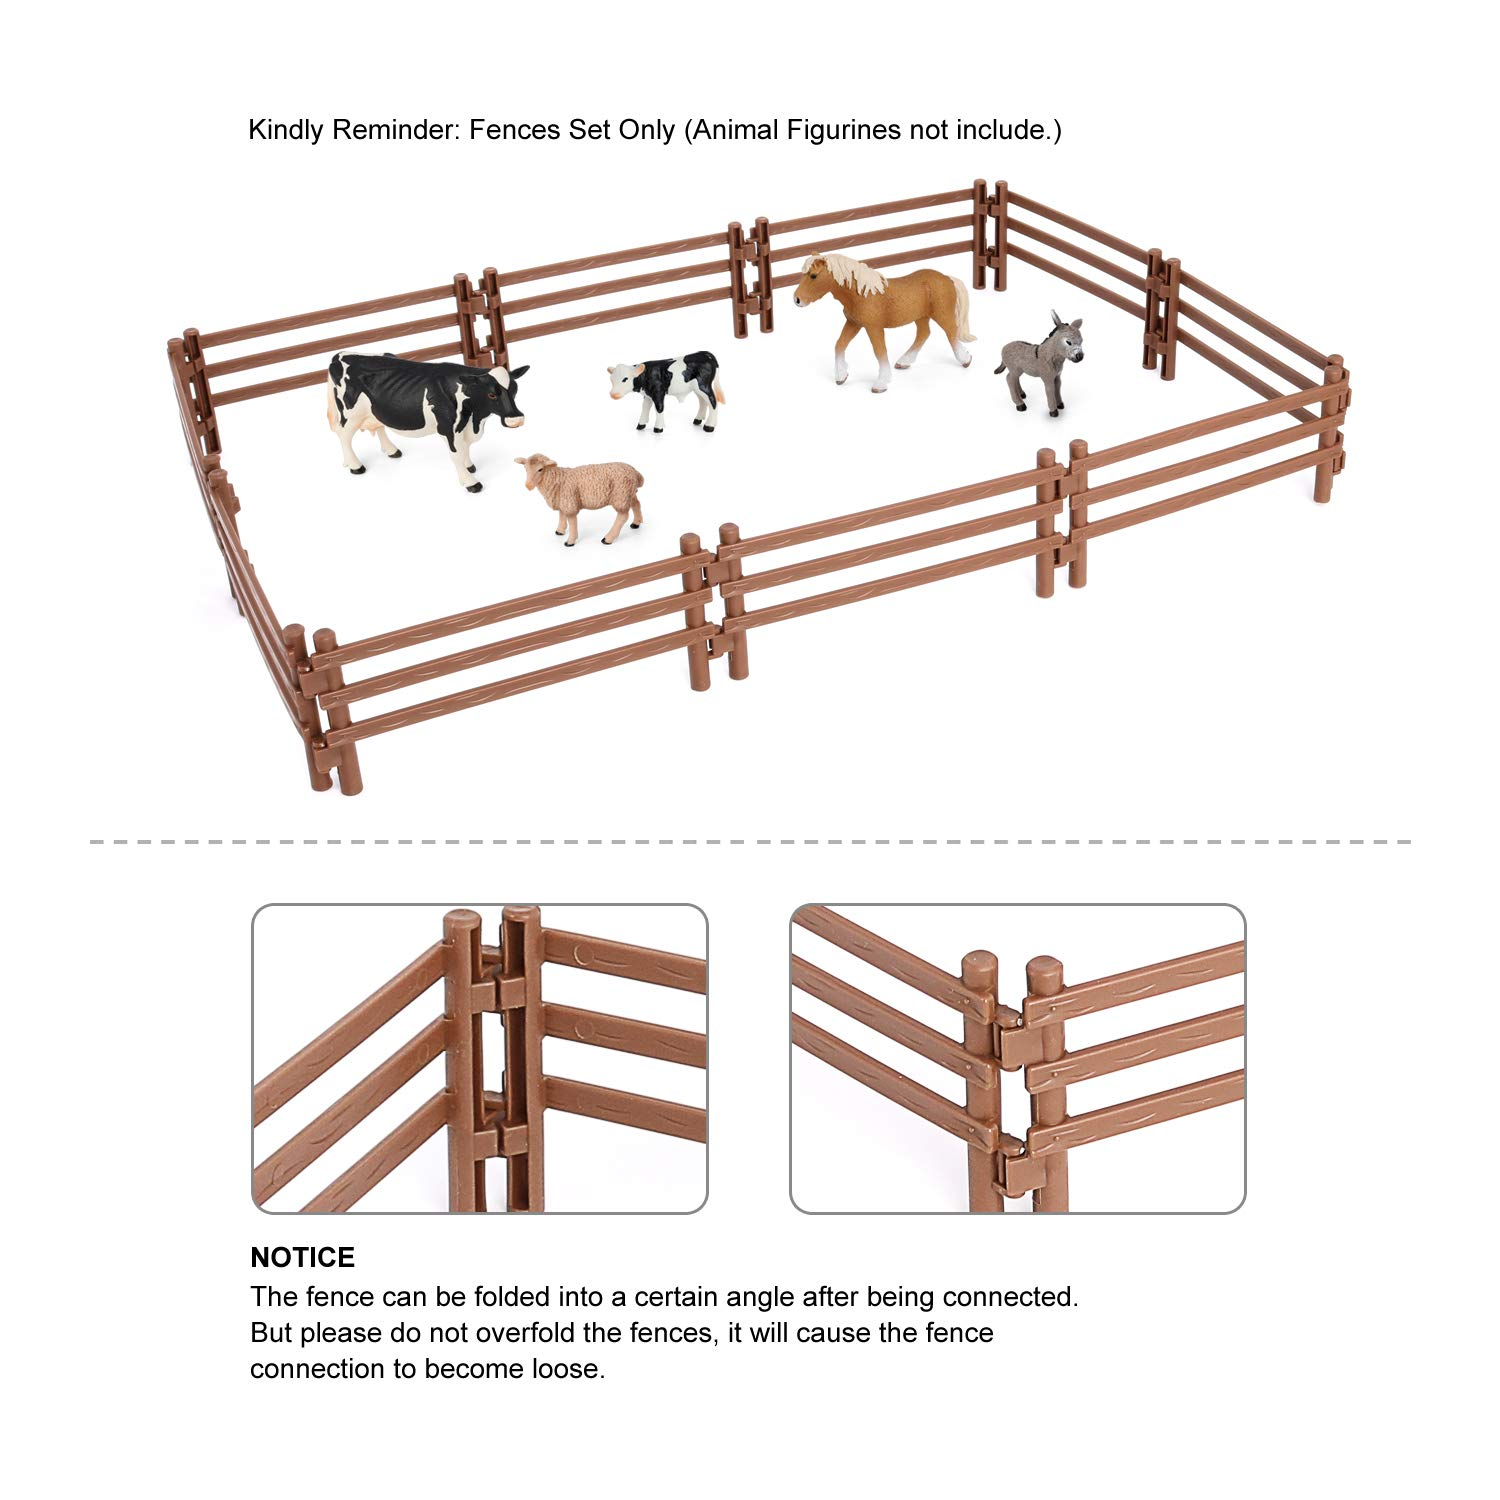 YUCAN 50PCS Horse Corral Fencing Accessories Playset Mini Plastic Garden Fence Toys Farm Animals Horses Figurines,Fence Panels Cake Toppers for Kids